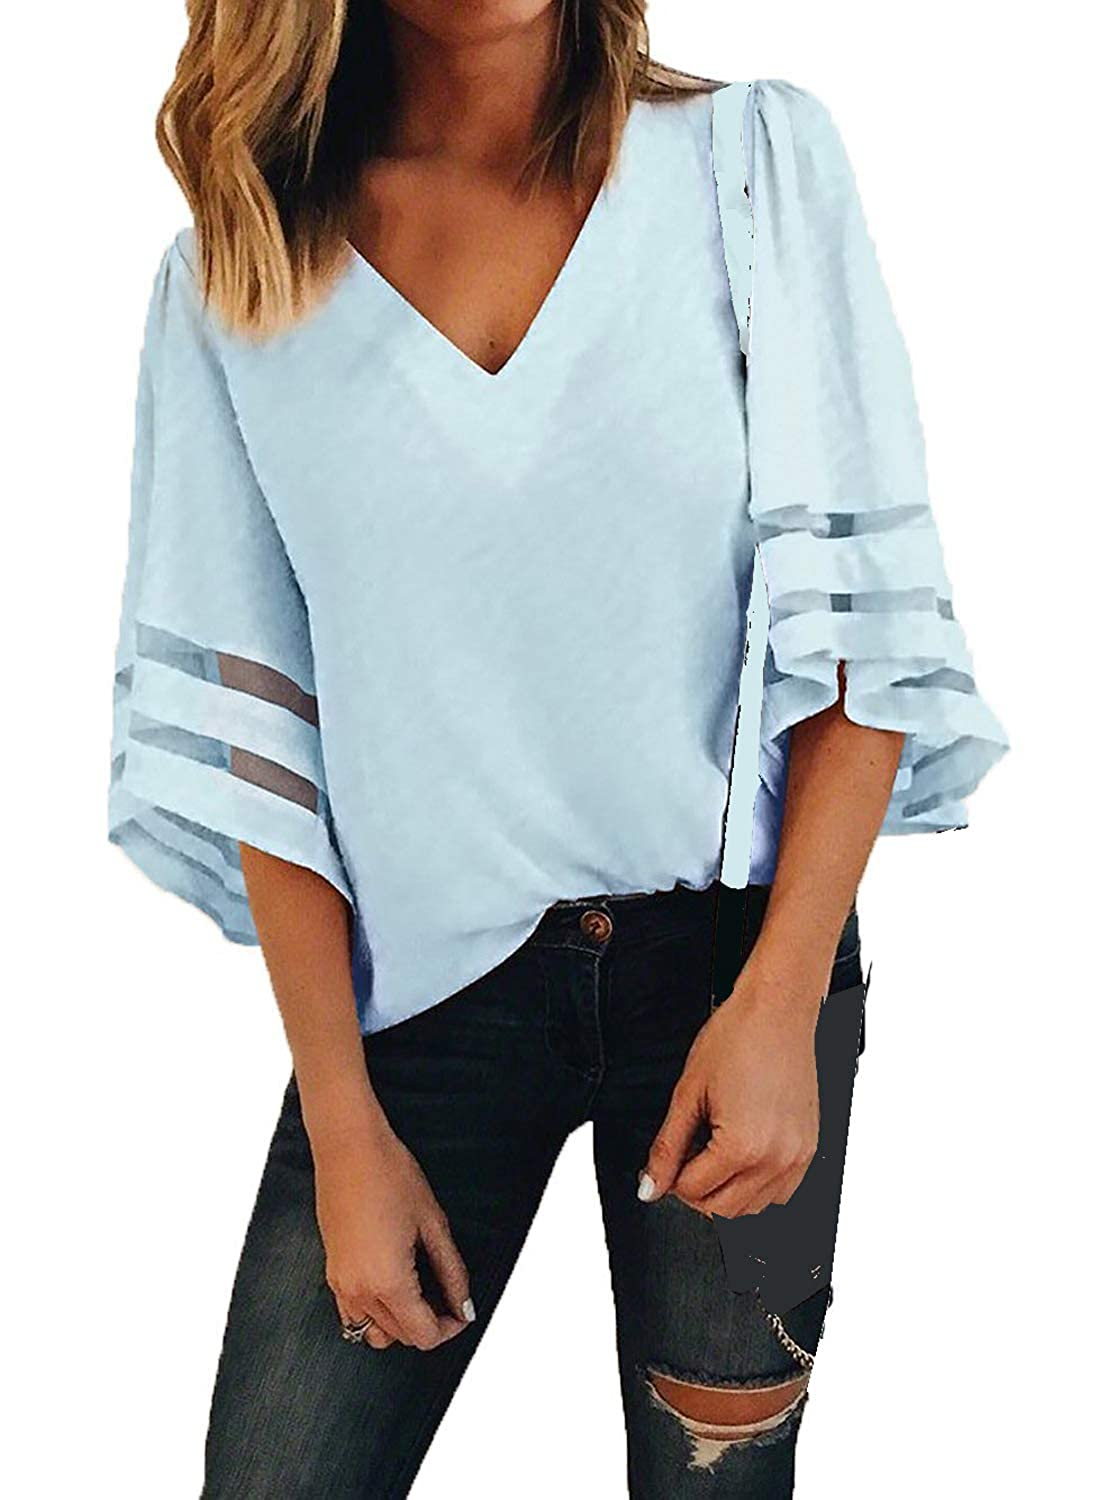 Charlotte Womens 3/4 Bell Sleeve V Neck Patchwork Blouse Casual Loose Shirt Tops Flare Sleeve Tops Bouse KKH666